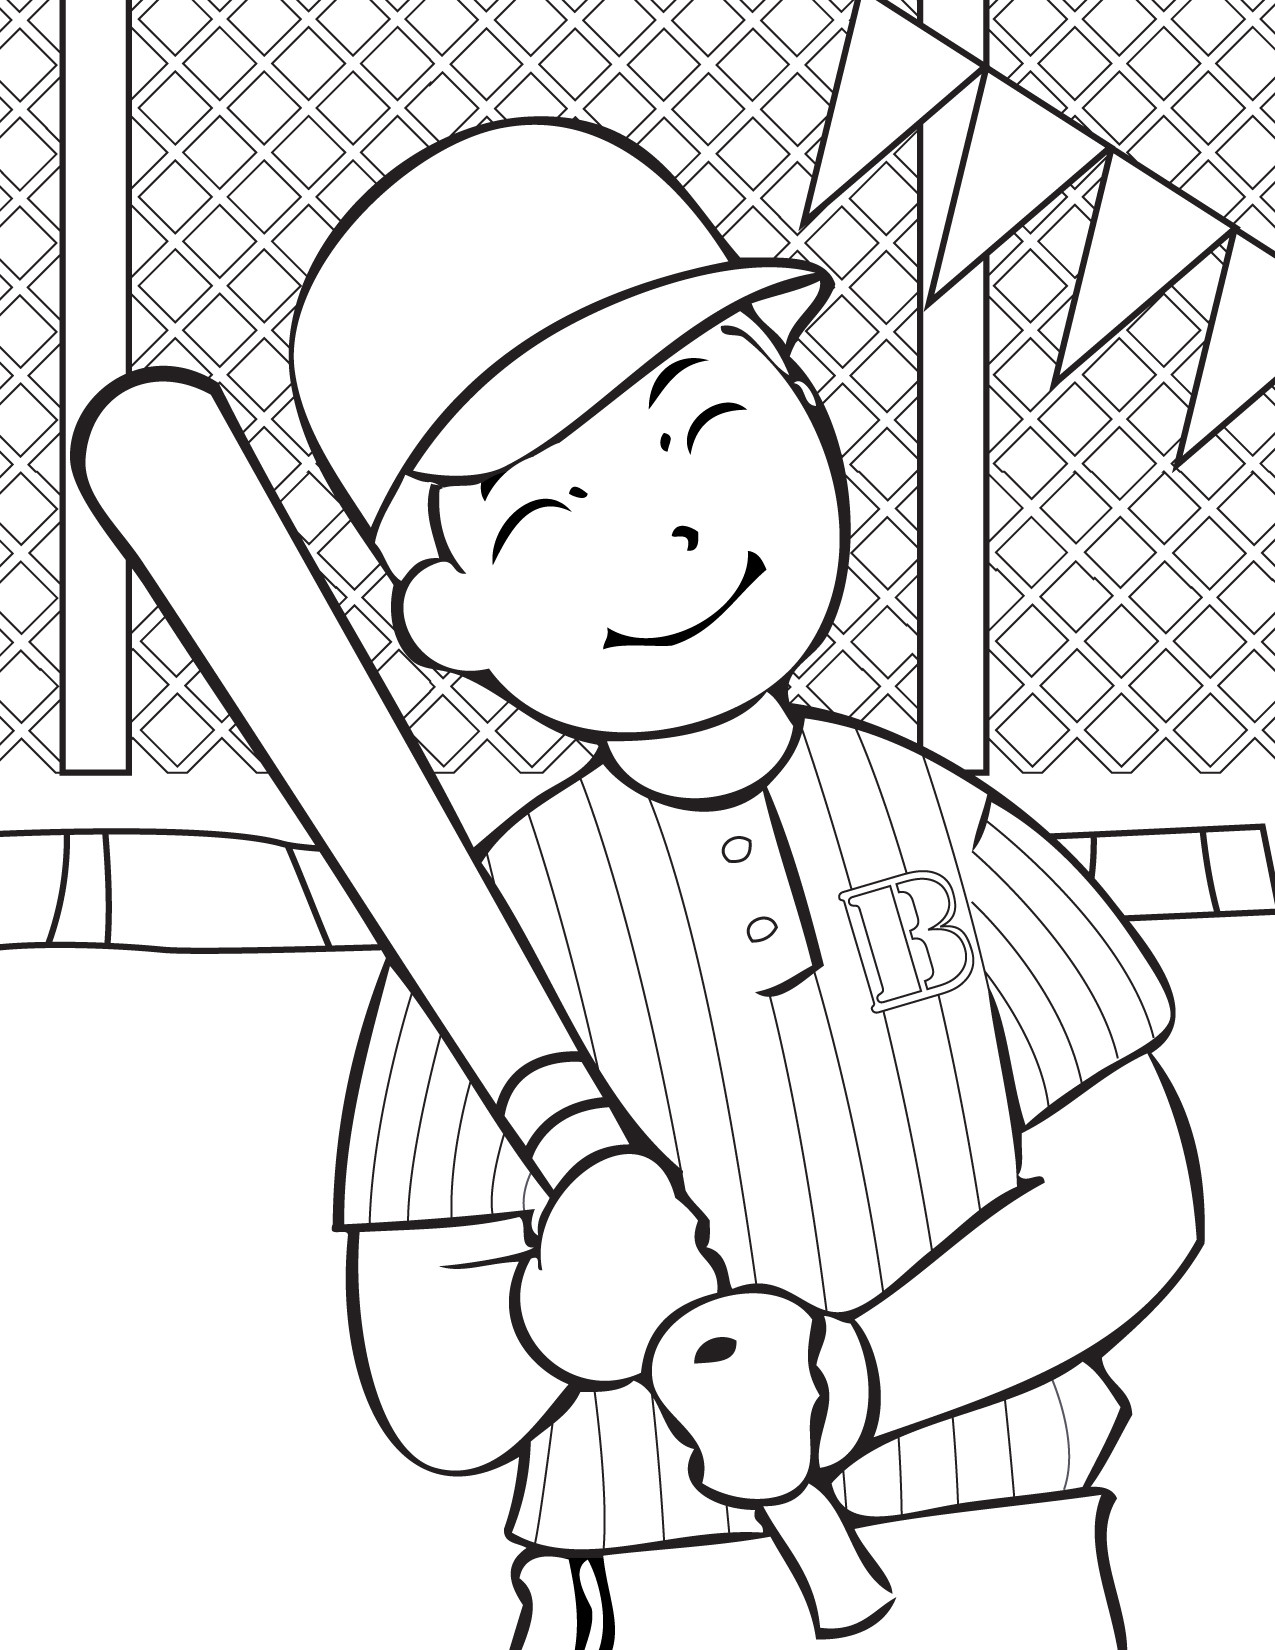 Best ideas about Baseball Coloring Pages For Kids . Save or Pin Free Printable Baseball Coloring Pages for Kids Best Now.